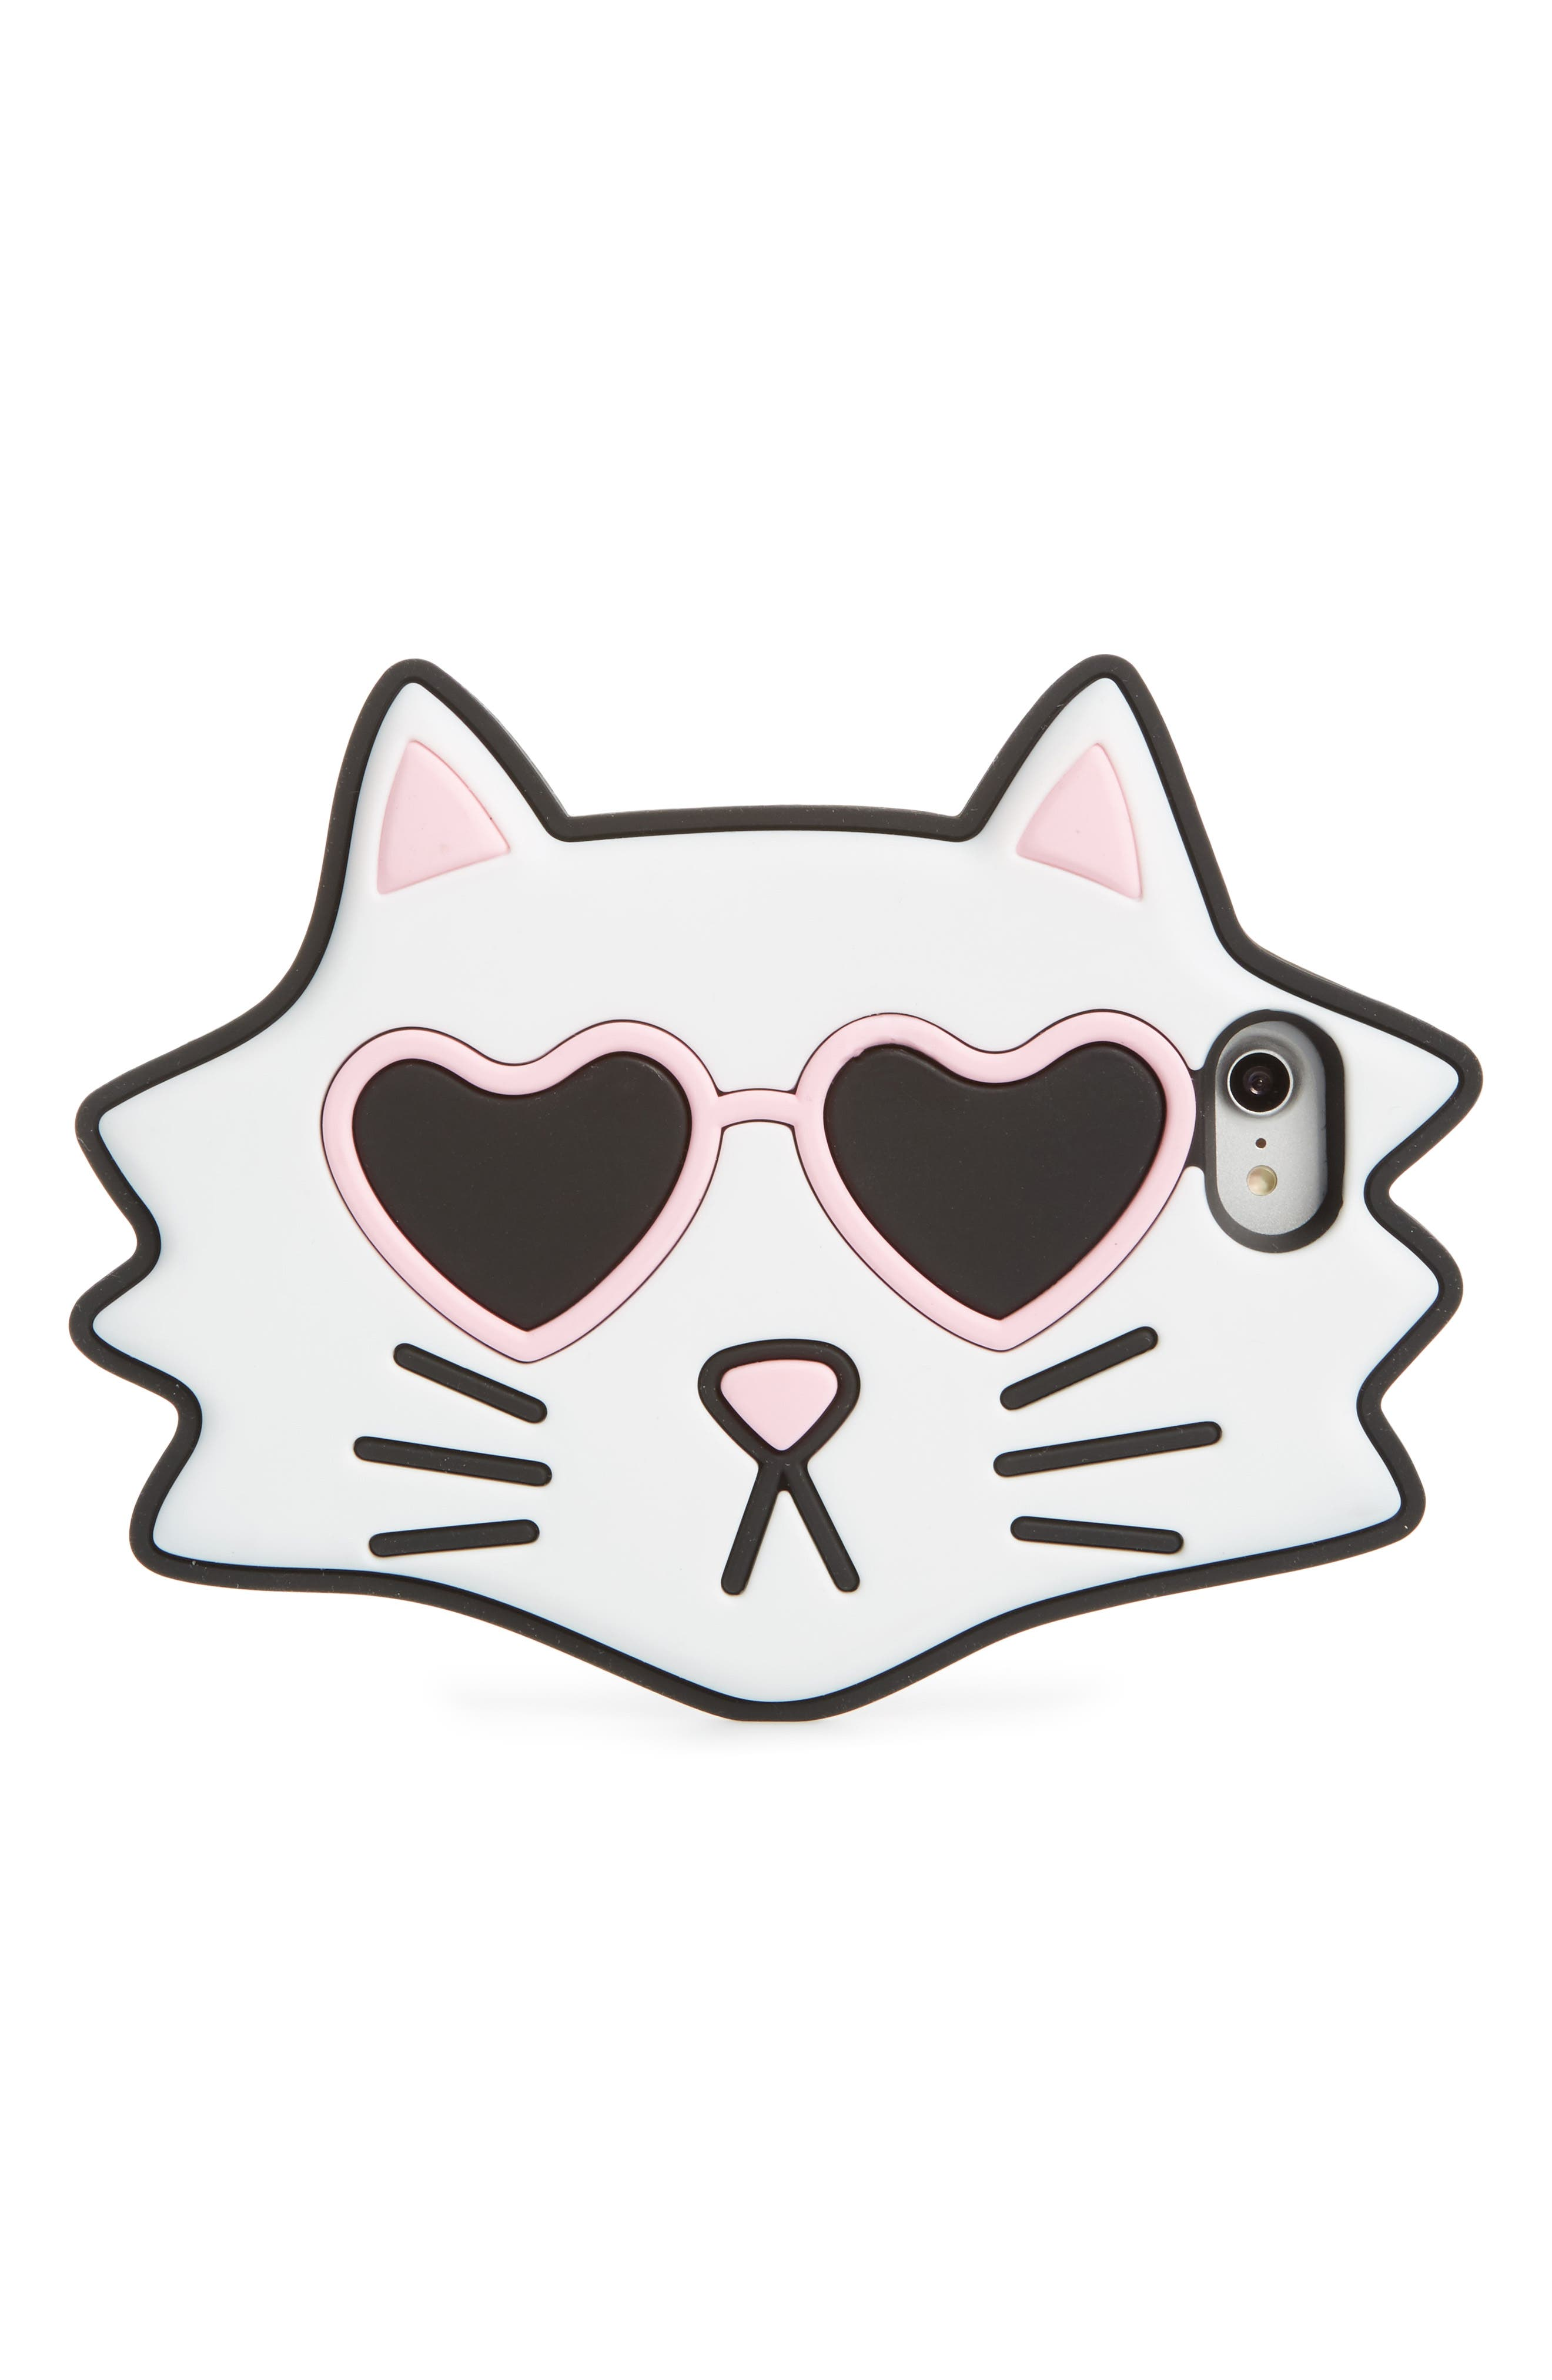 Oversize Cat iPhone 7/8 Case with Chain,                         Main,                         color, White/ Black/ Pink